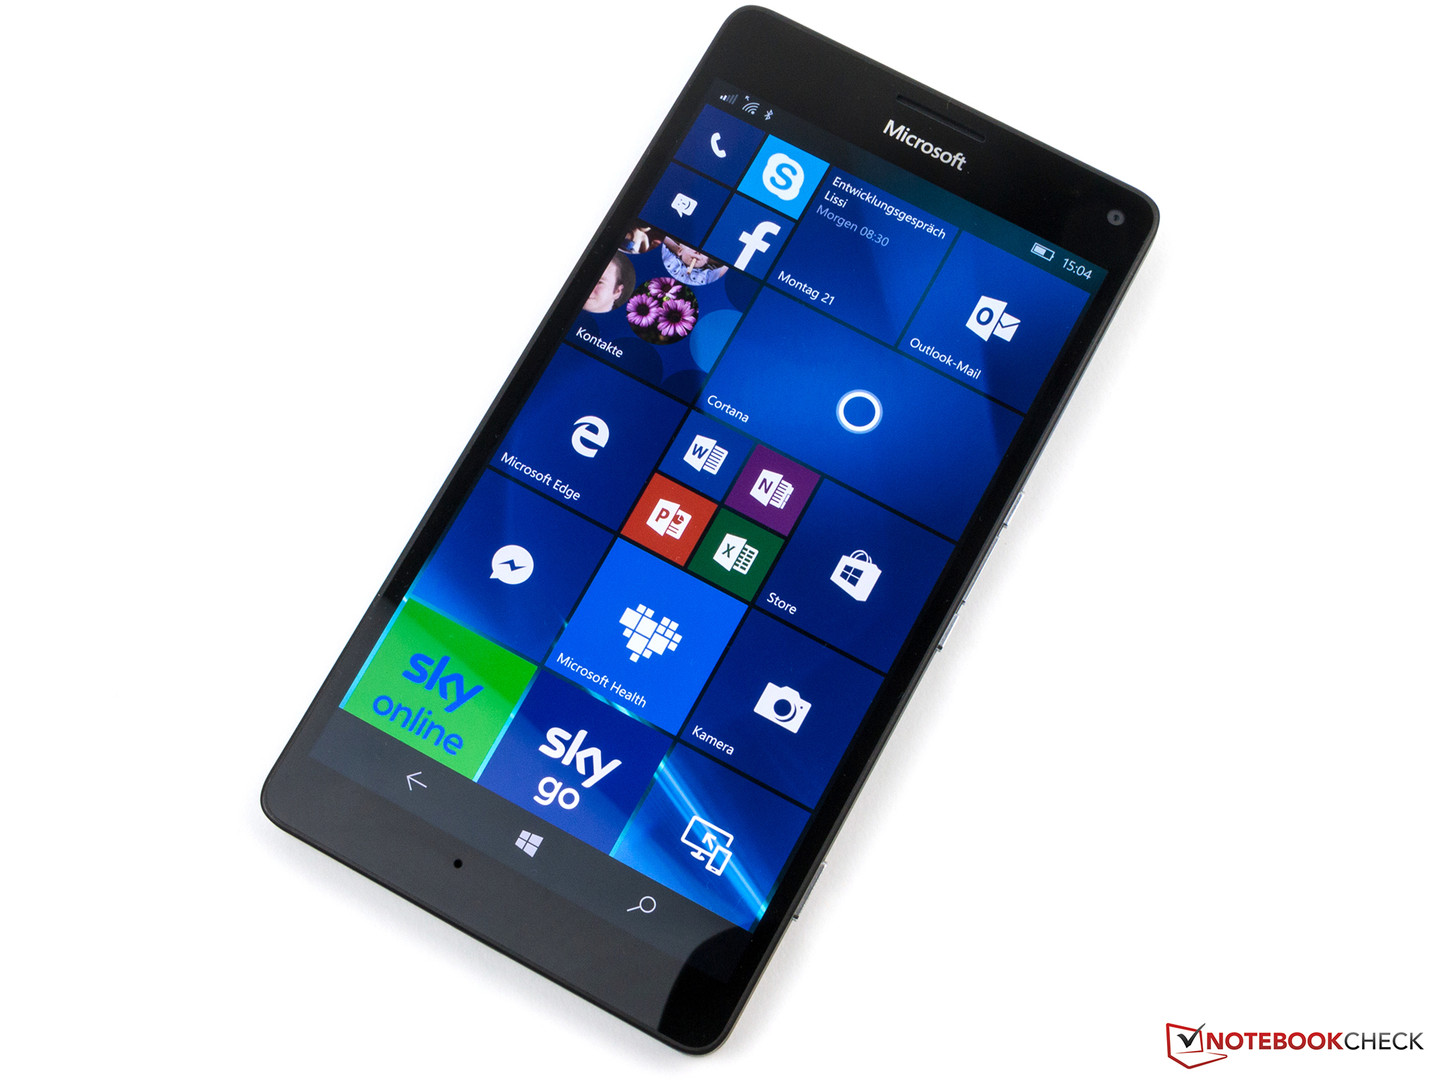 The future of Microsoft Windows Phone OS could be bleak ...